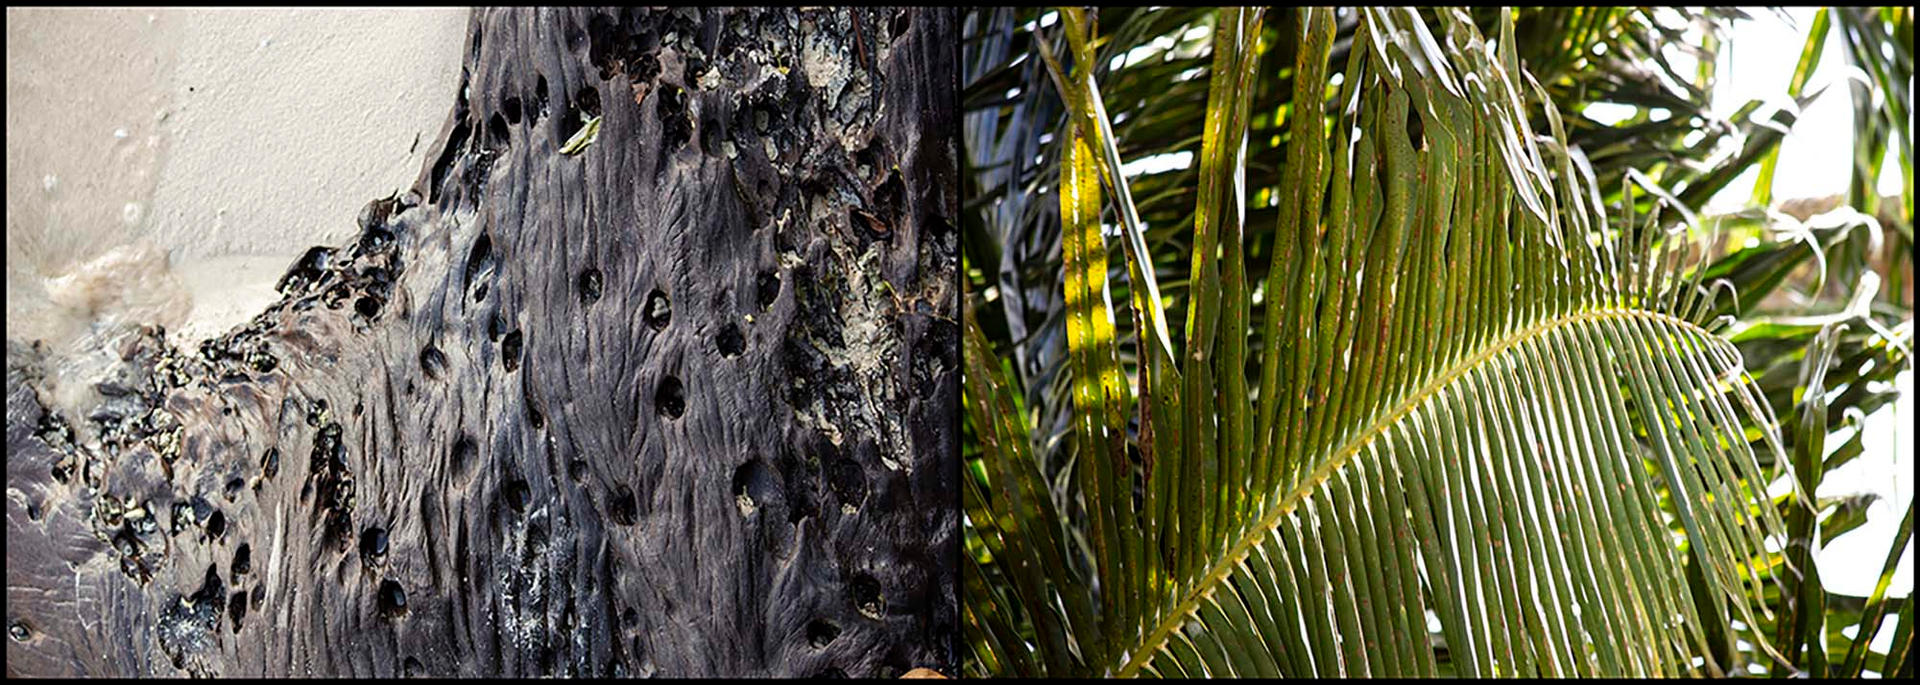 Wood & Frond